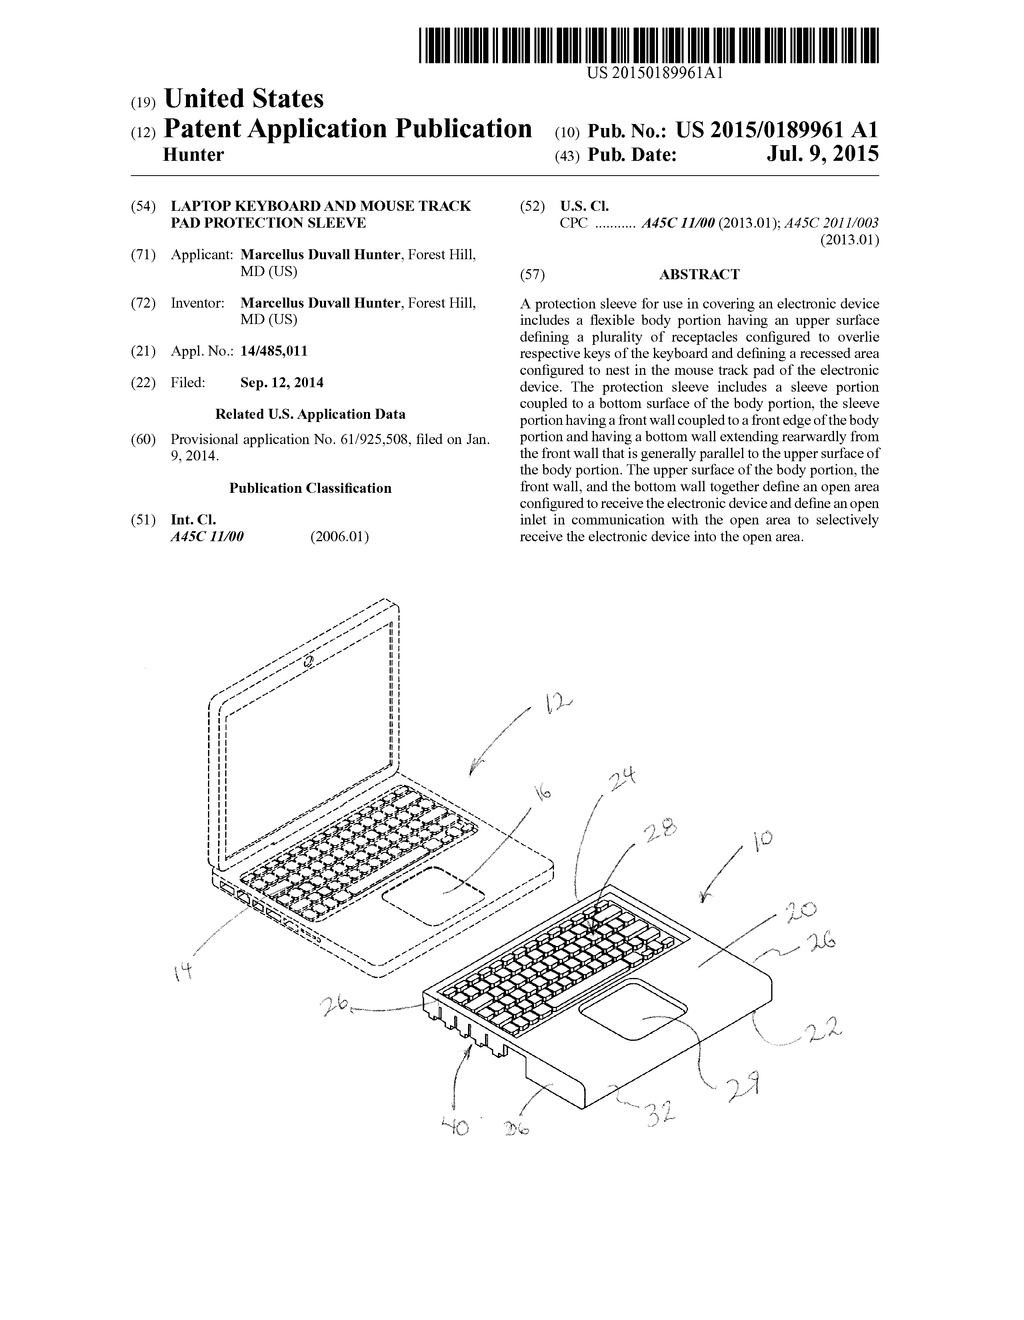 Laptop Keyboard And Mouse Track Pad Protection Sleeve Diagram Schematic Image 01